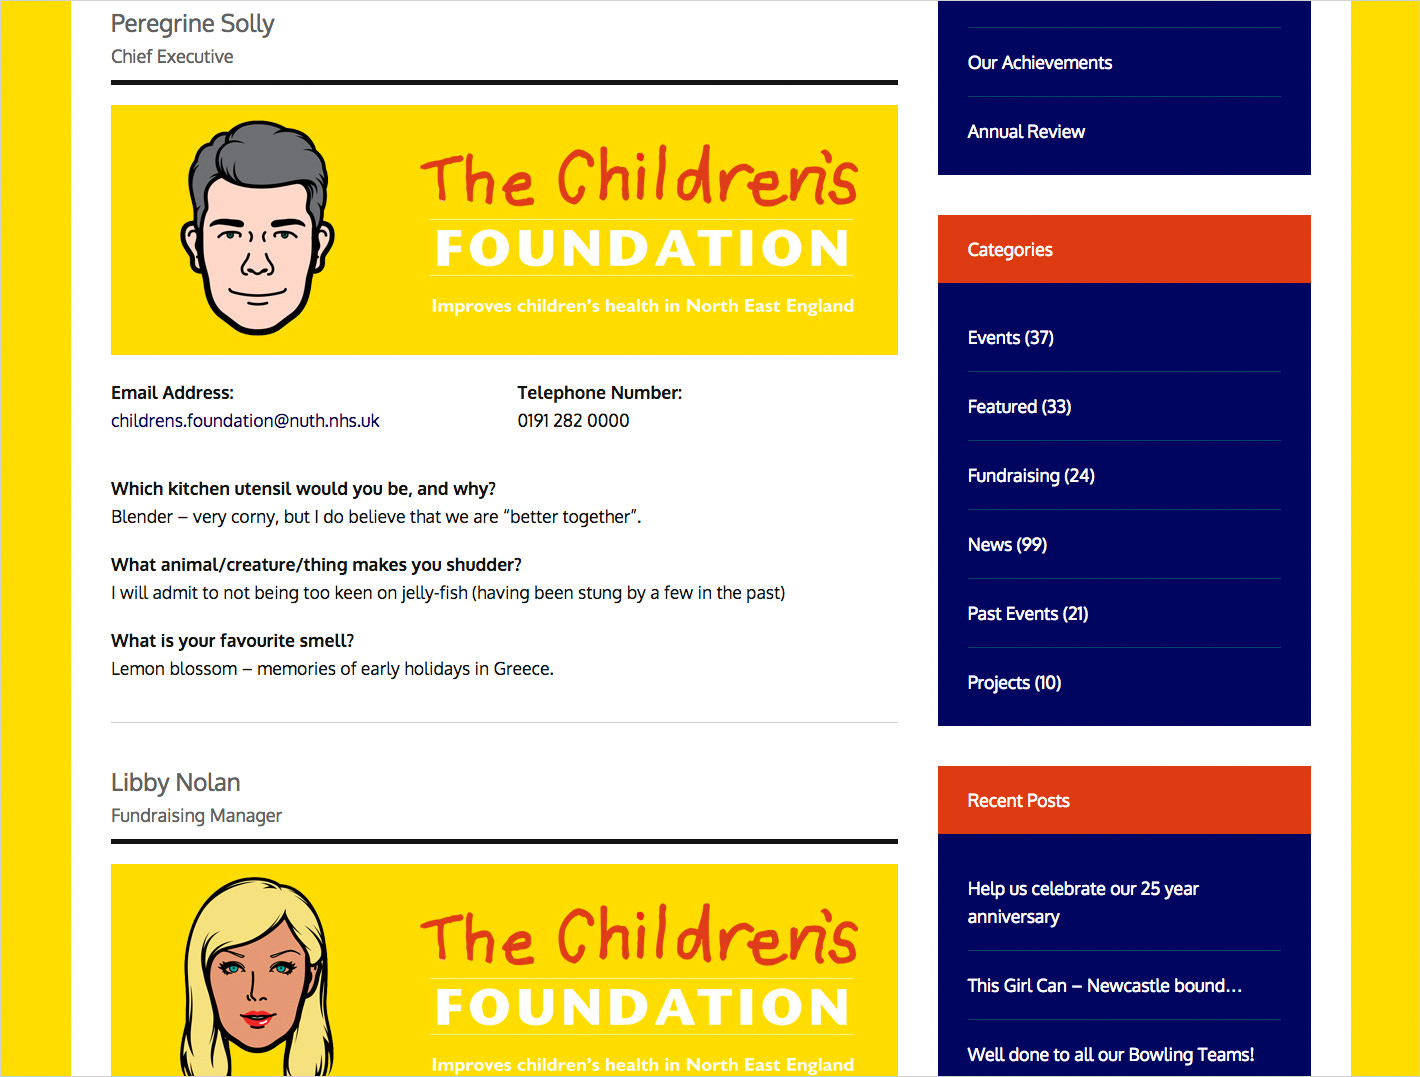 A screenshot showing The Children's Foundation staff page